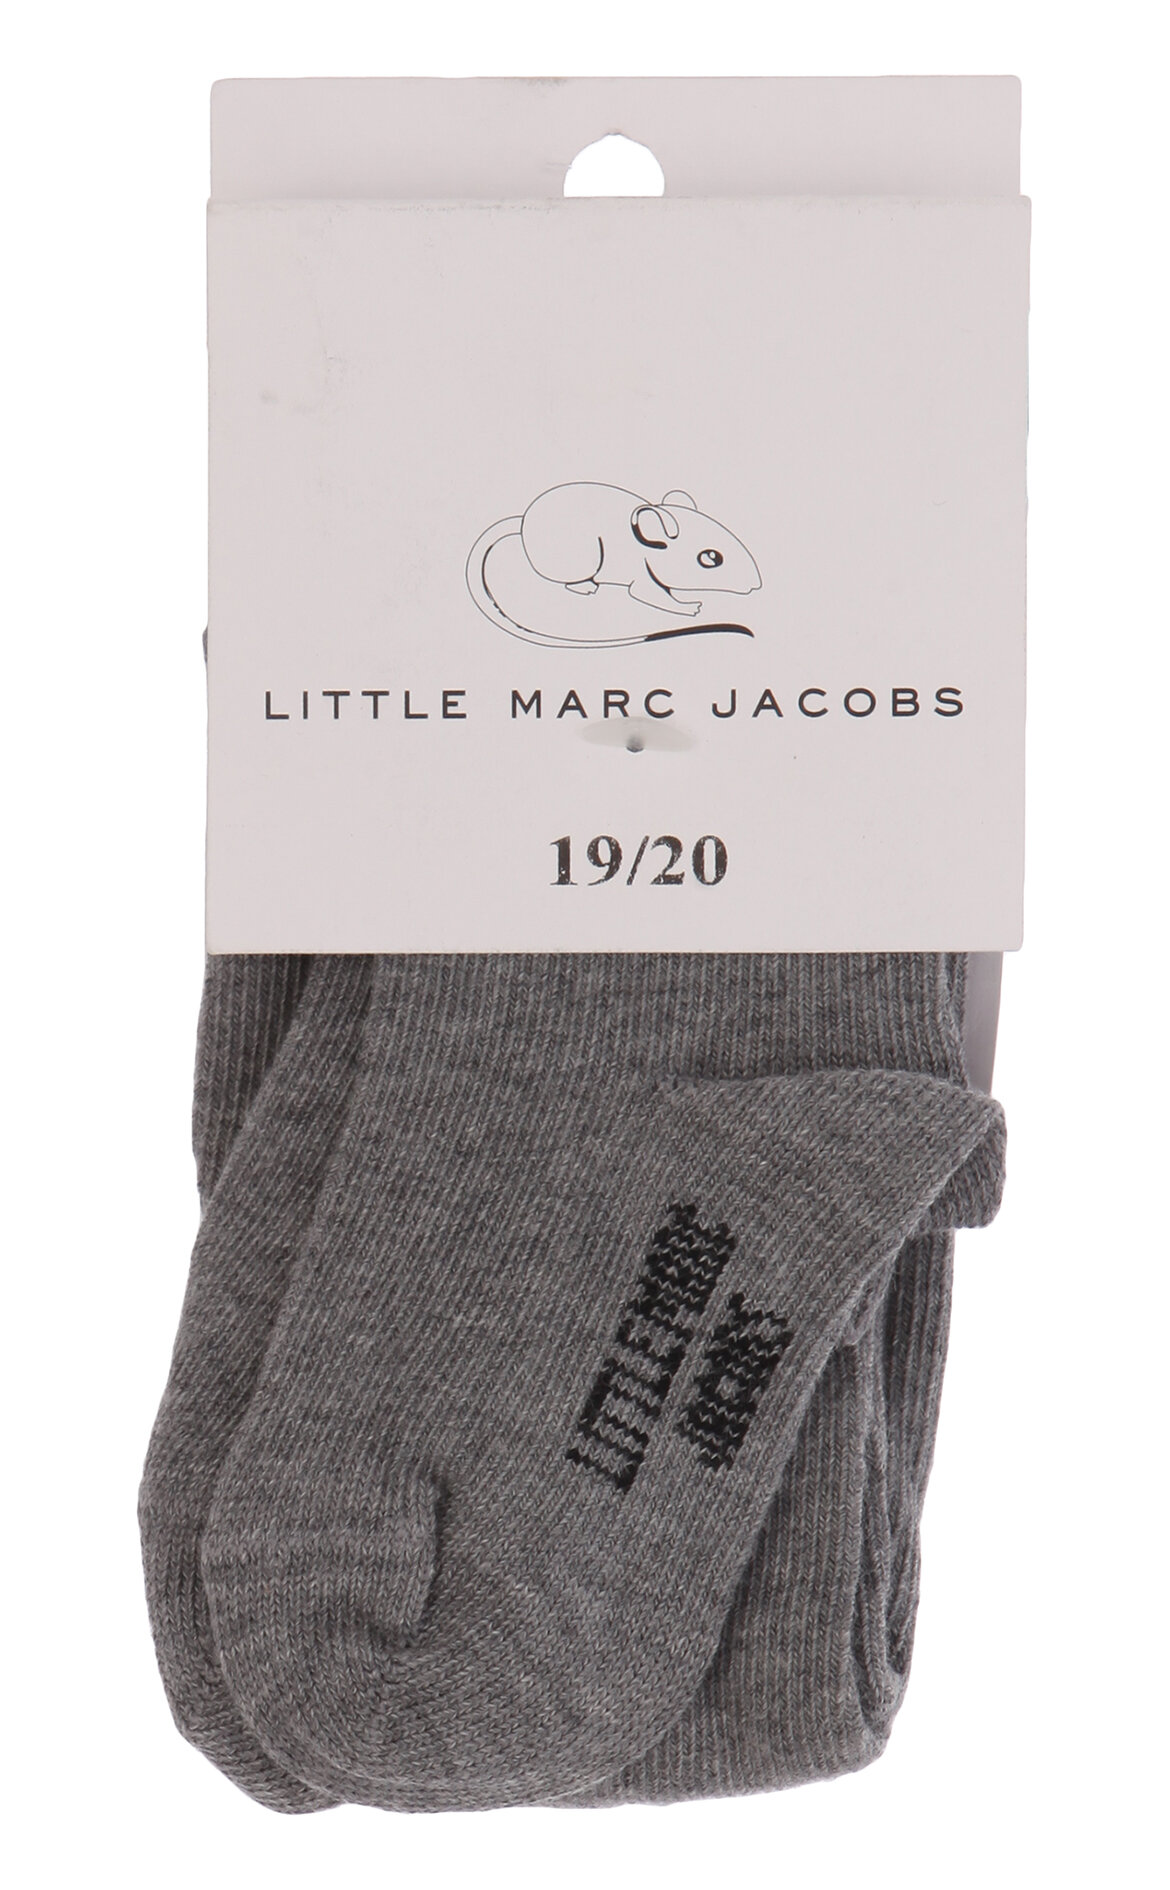 Little Marc Jacobs-Little Marc Jacobs Kız Çocuk Çorap